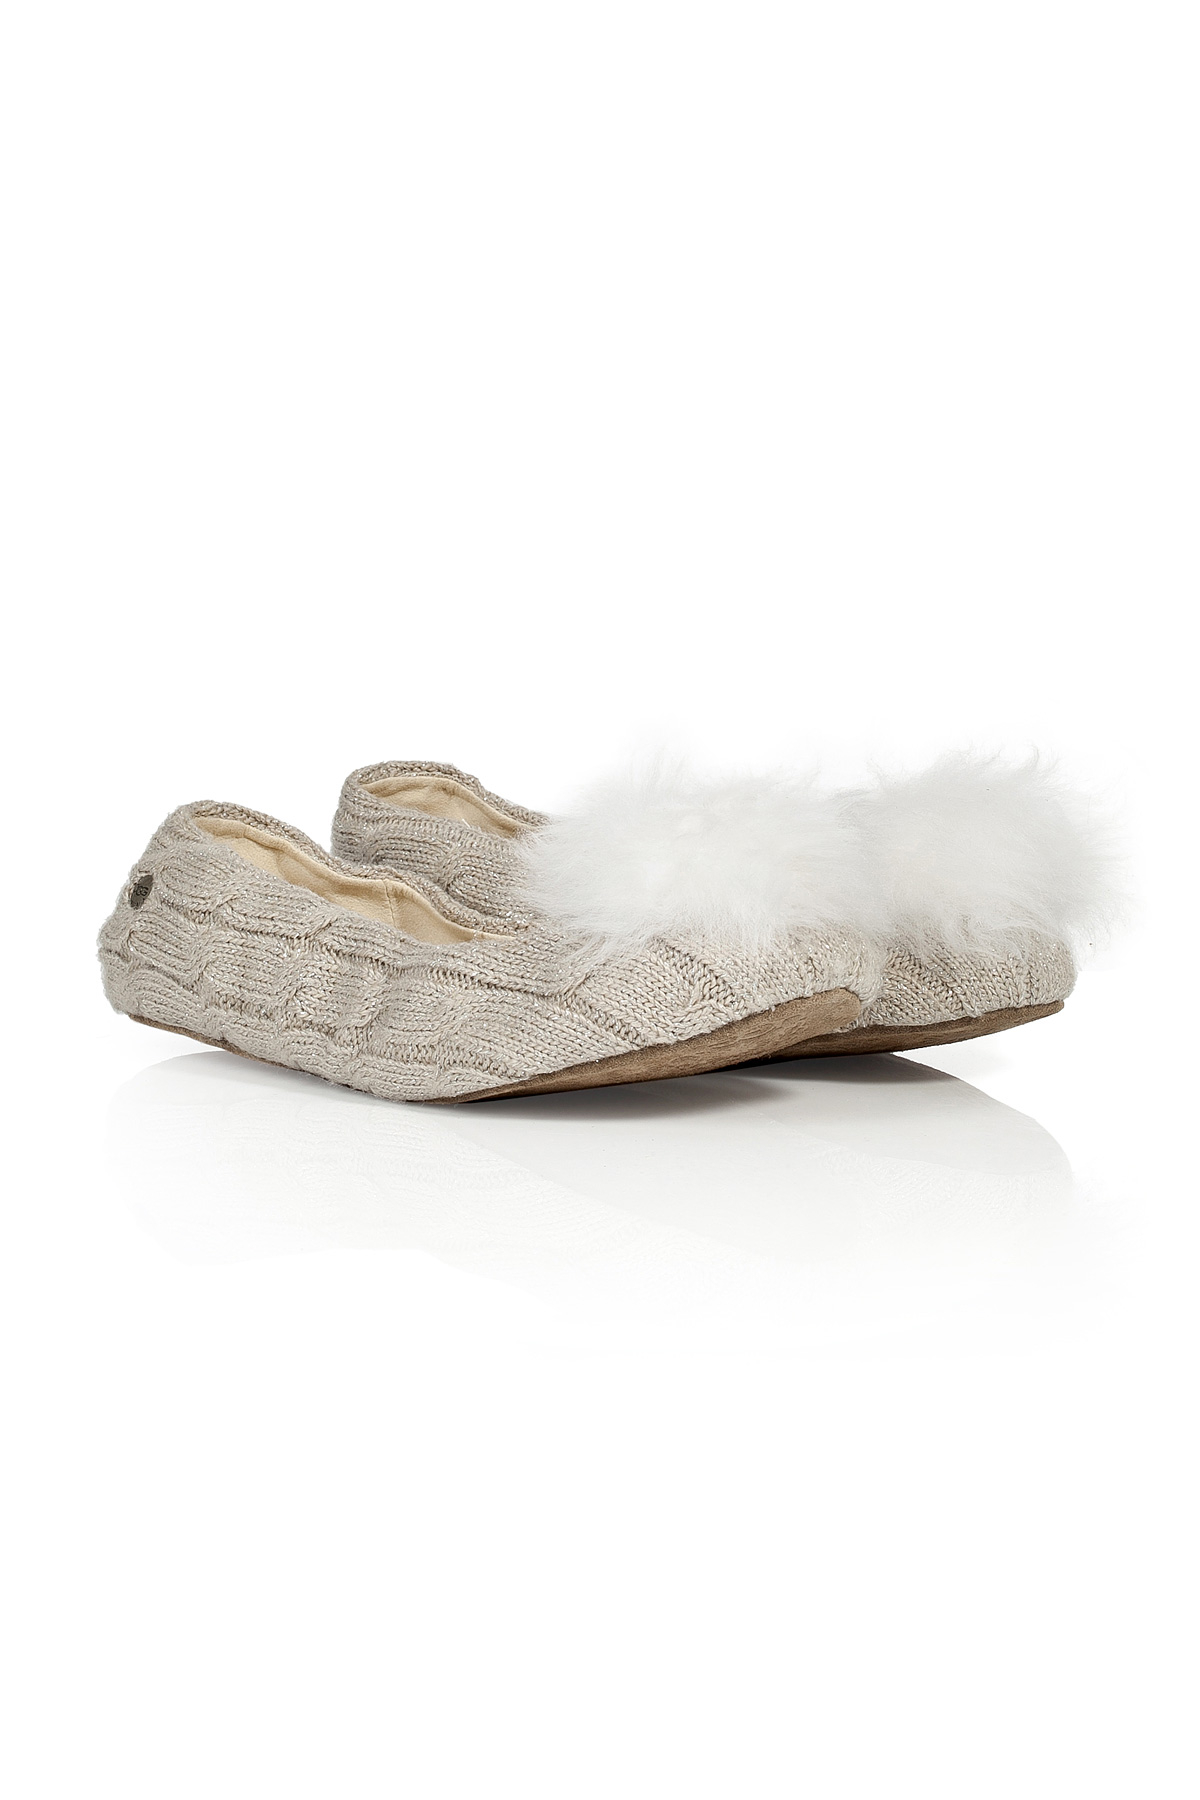 7b99e5d0a5a5 Ugg Lyst White Slippers In Fur Wool With Pompom OzOUwrPq